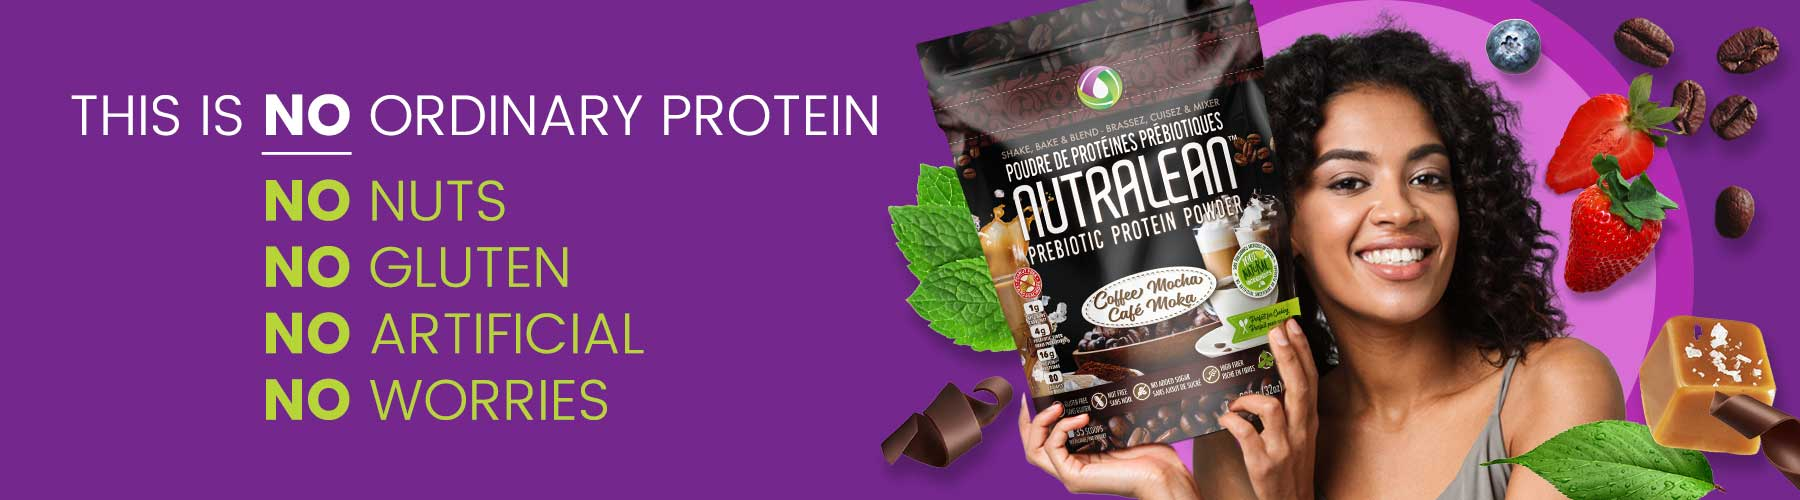 prebiotic protein powder for women allergy safe all natural shakes